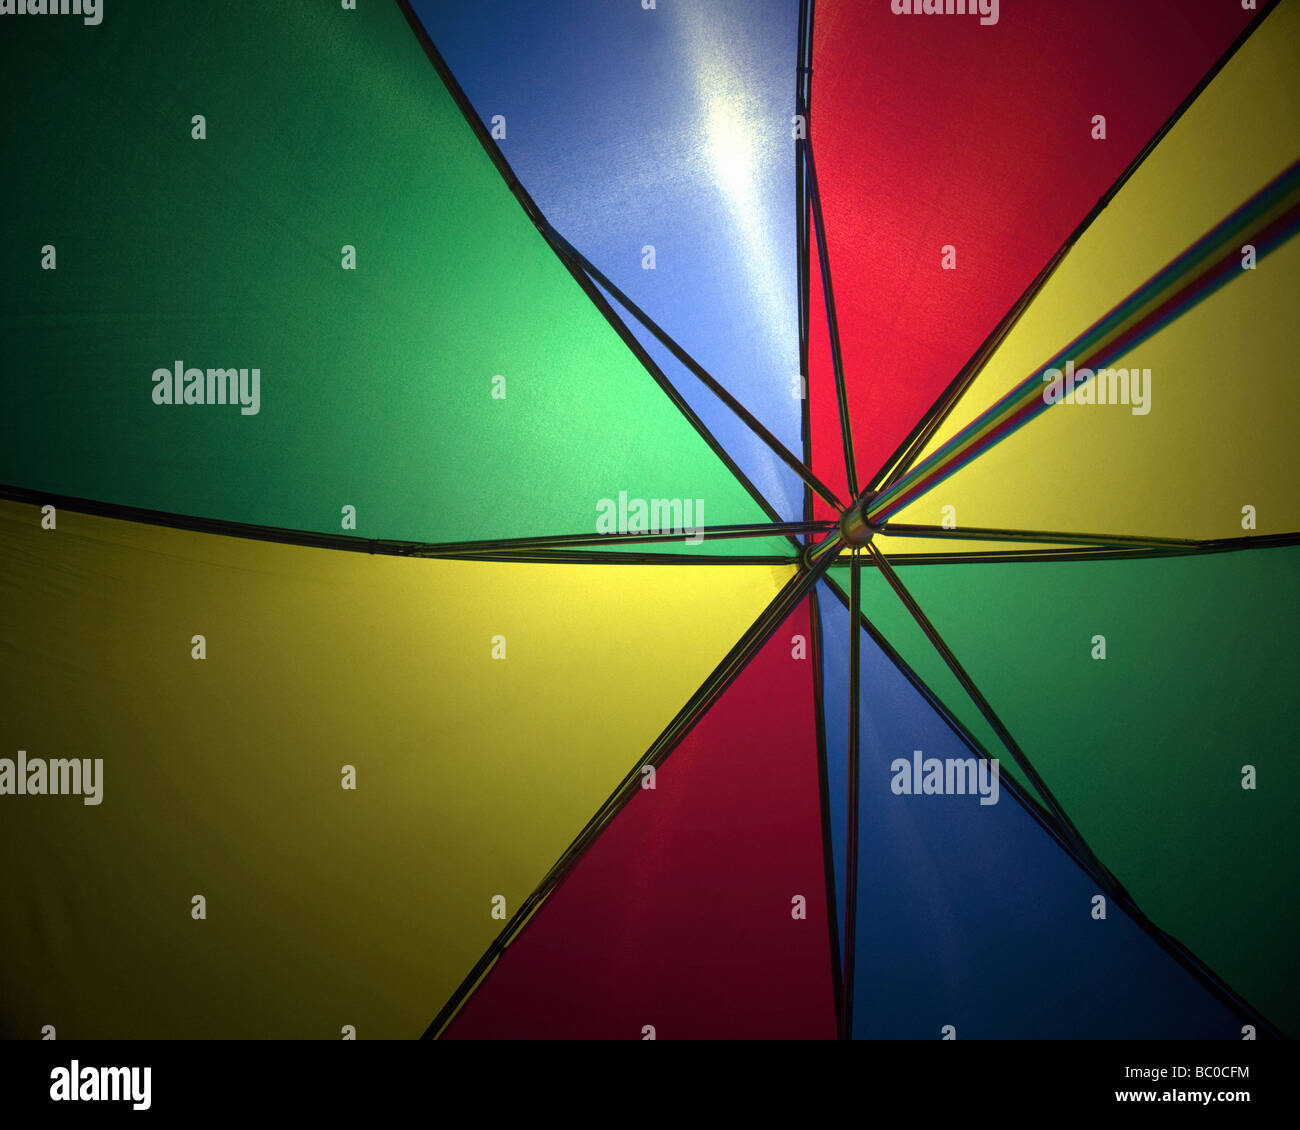 HOLIDAY CONCEPT: Colourful umbrella detail - Stock Image